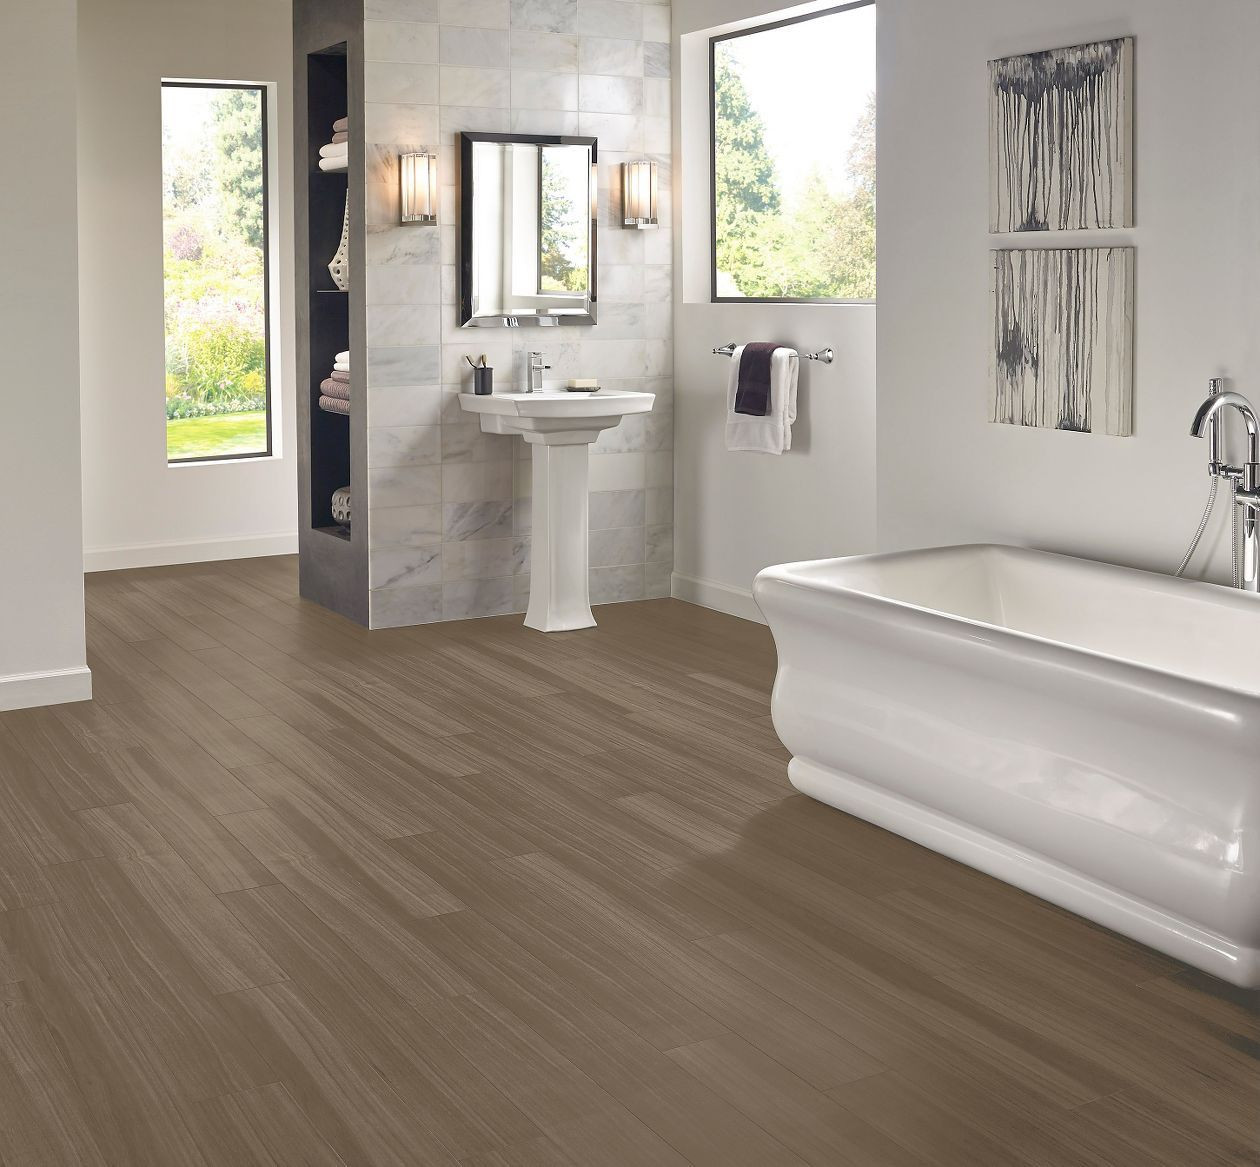 empire engineered hardwood flooring of armstrong luxe empire walnut flint gray 8mm x 6 x 48 our floors pertaining to armstrong luxe empire walnut flint gray 8mm x 6 x 48 with rigid core